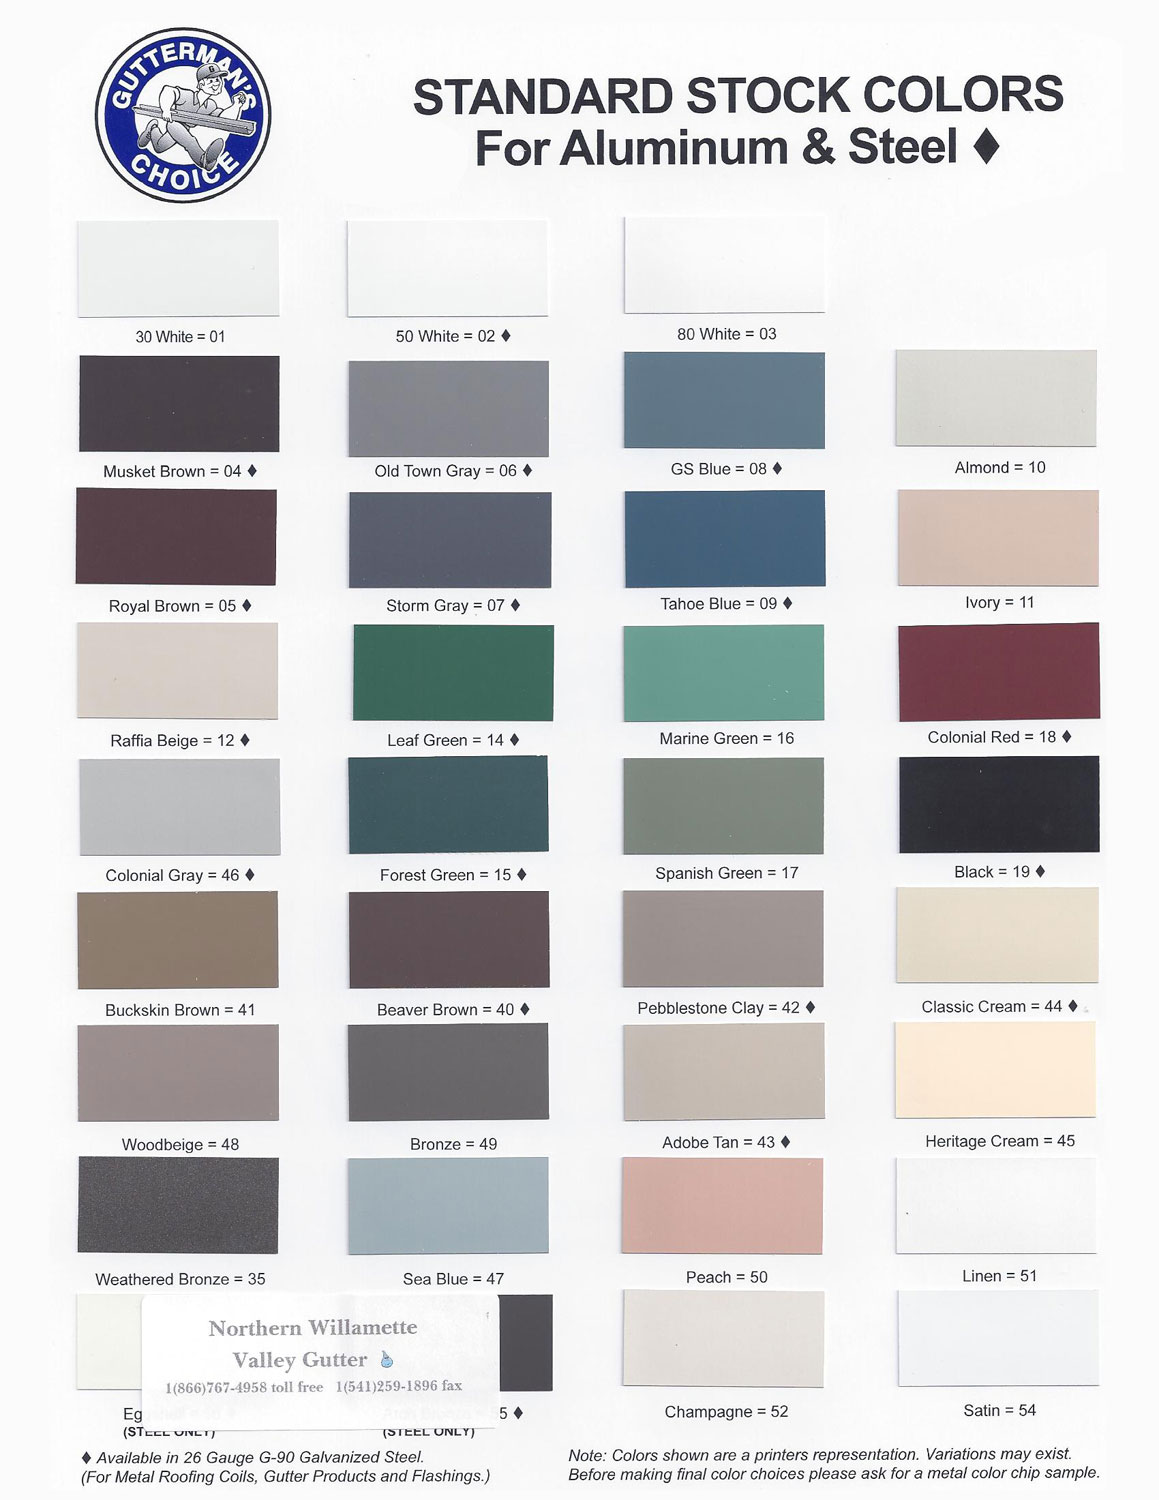 Gallery of available colors